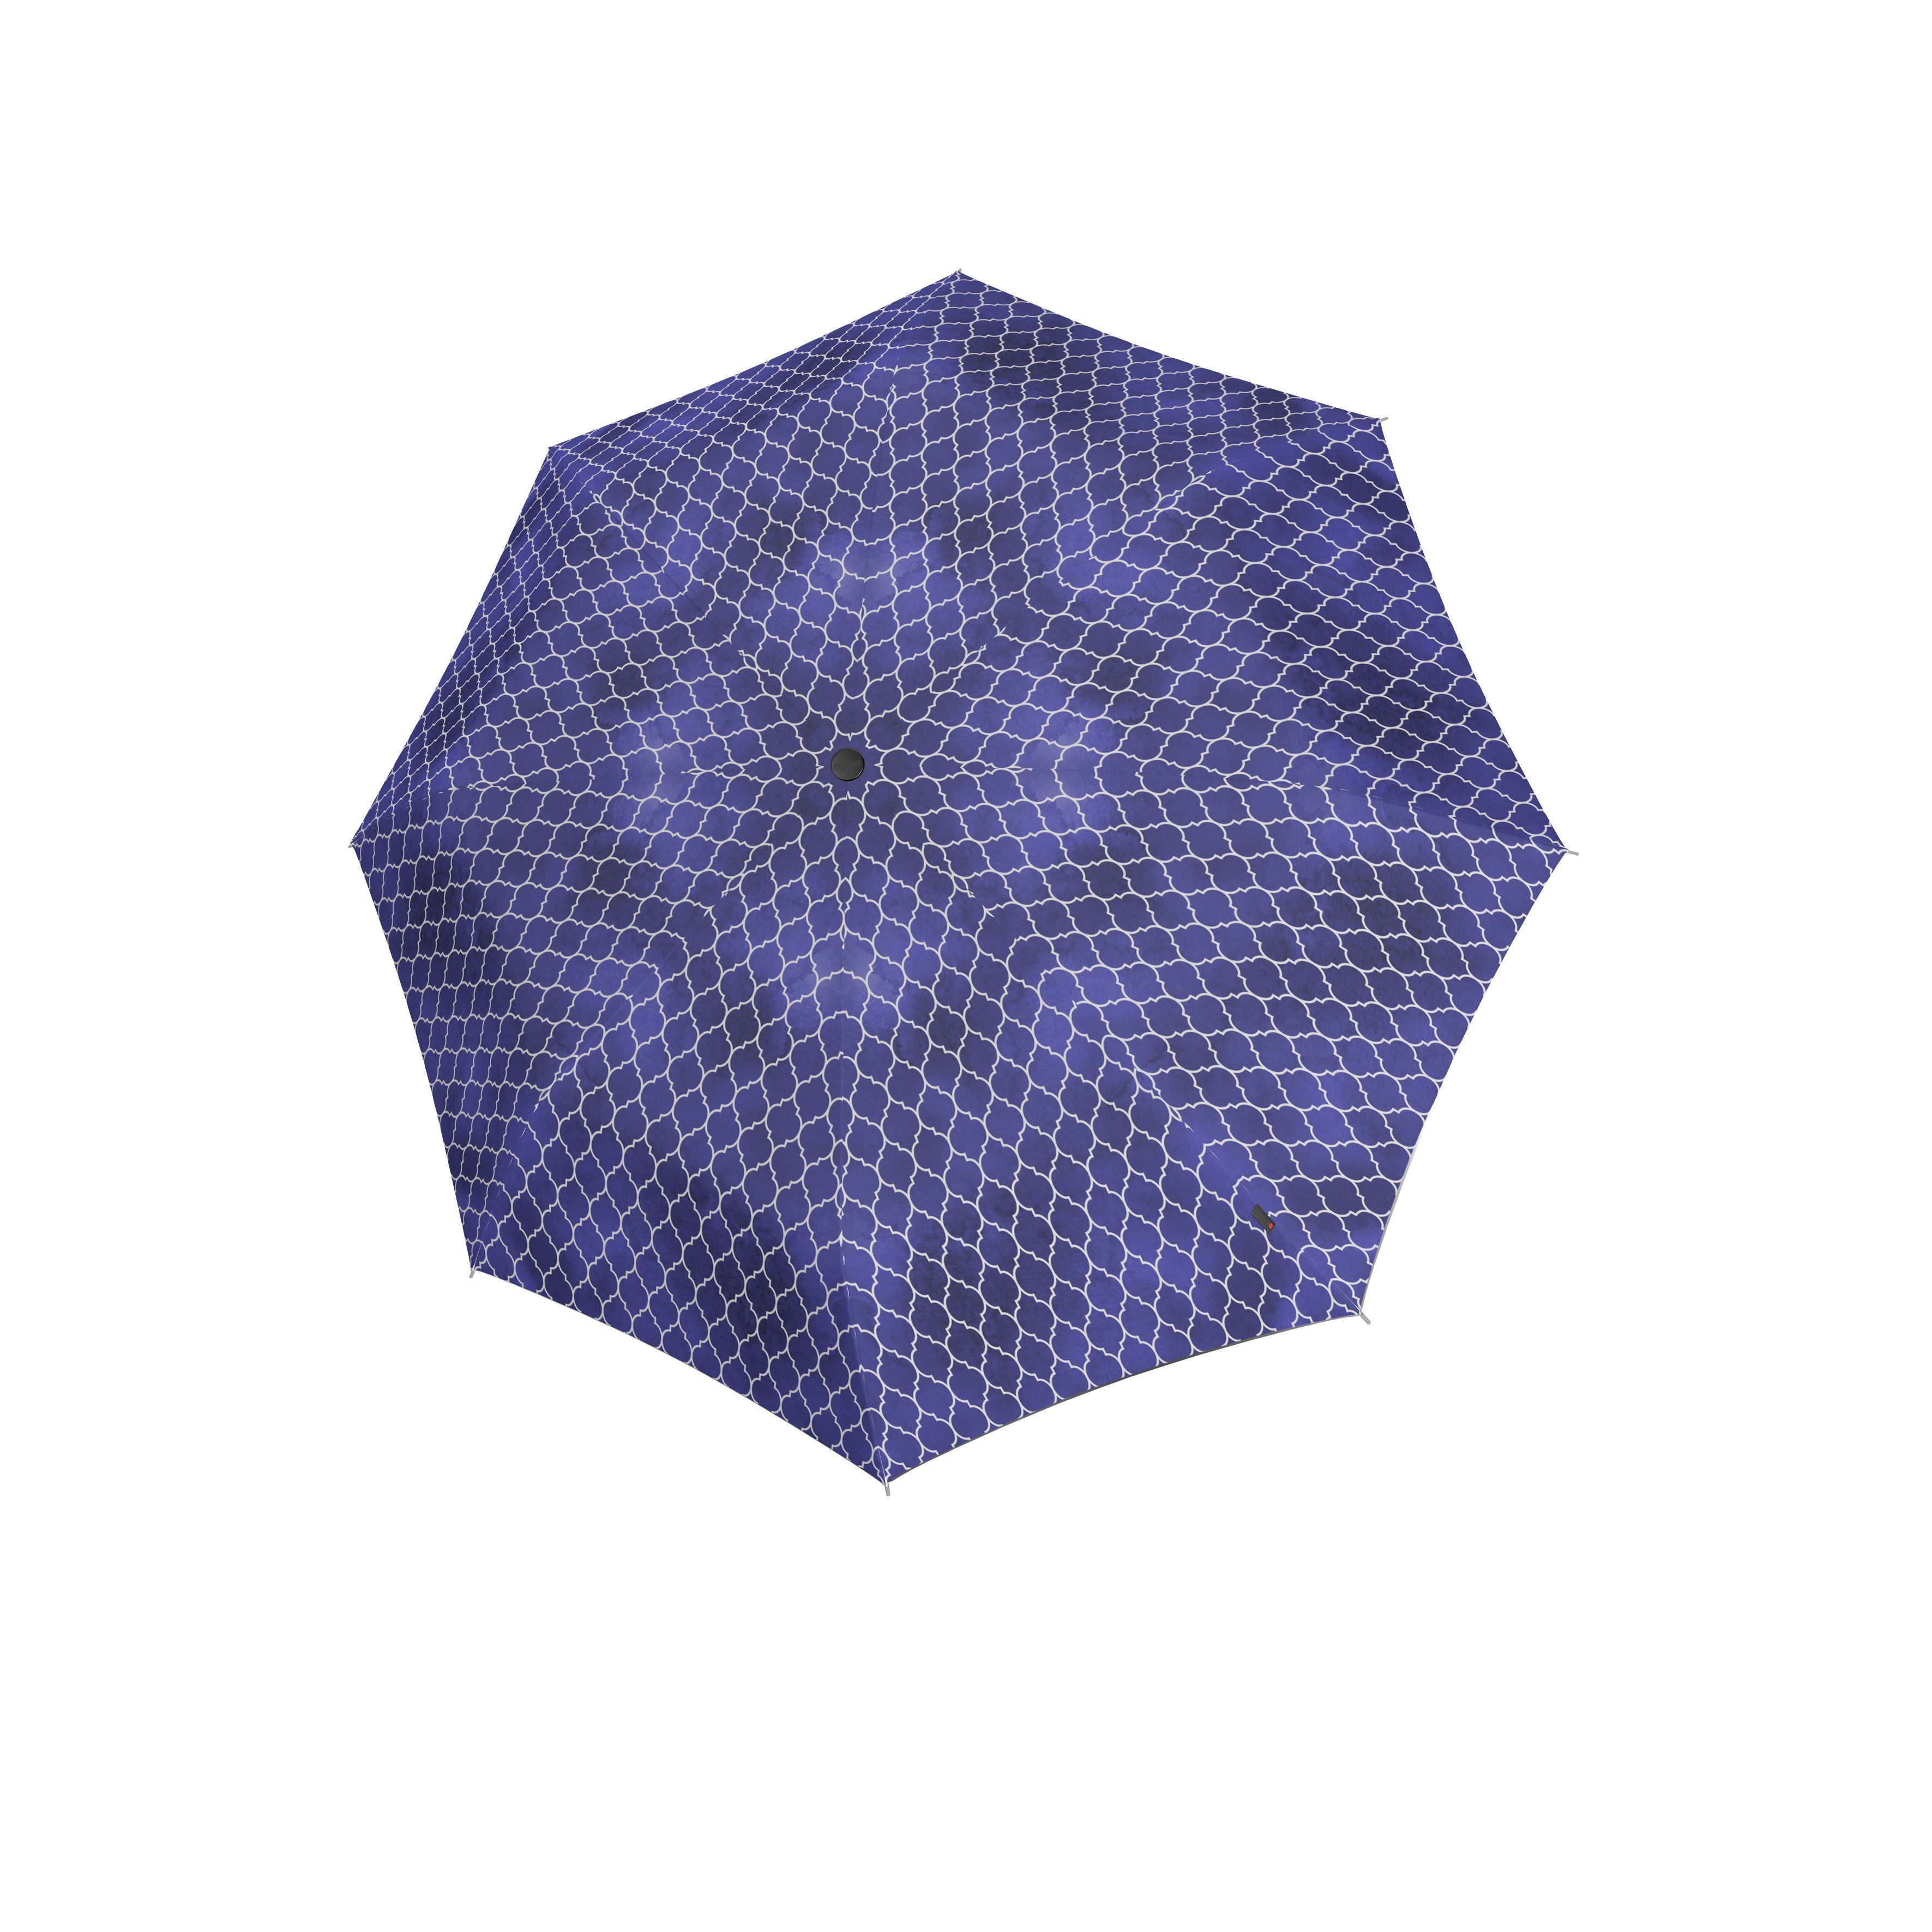 Knirps Umbrella Knirps T.200 medium duomatic regenerate blue with UV Protection